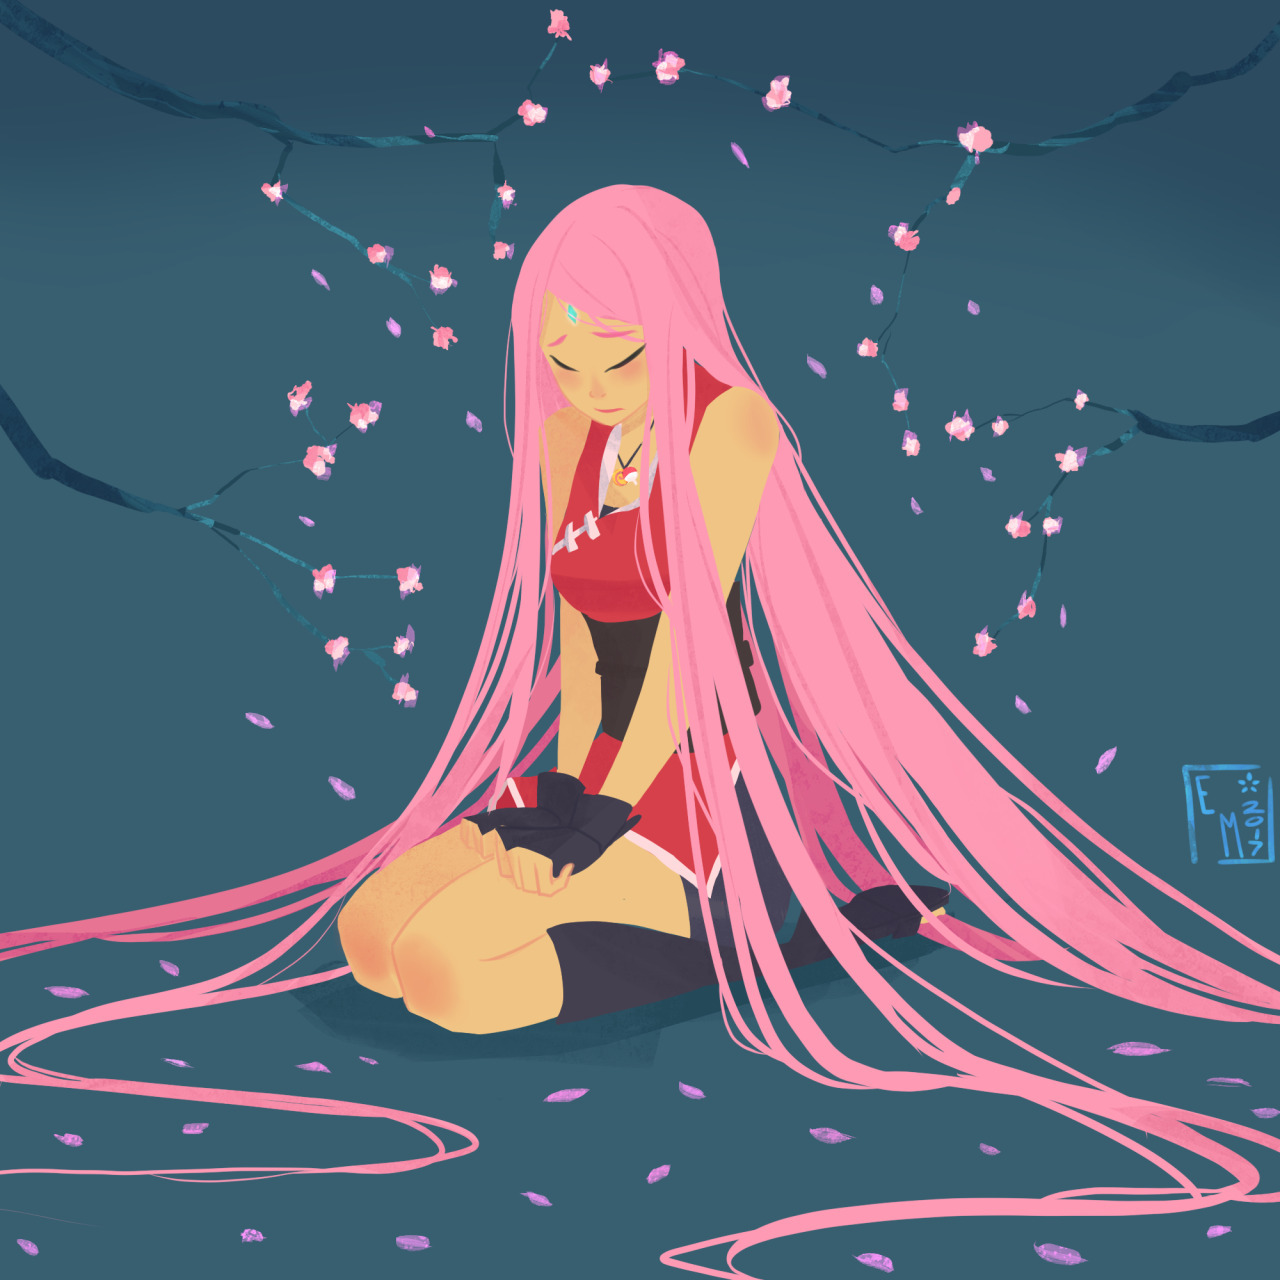 141 Images About Haruno Sakura On We Heart It See More About Naruto Sakura And Sakura Haruno